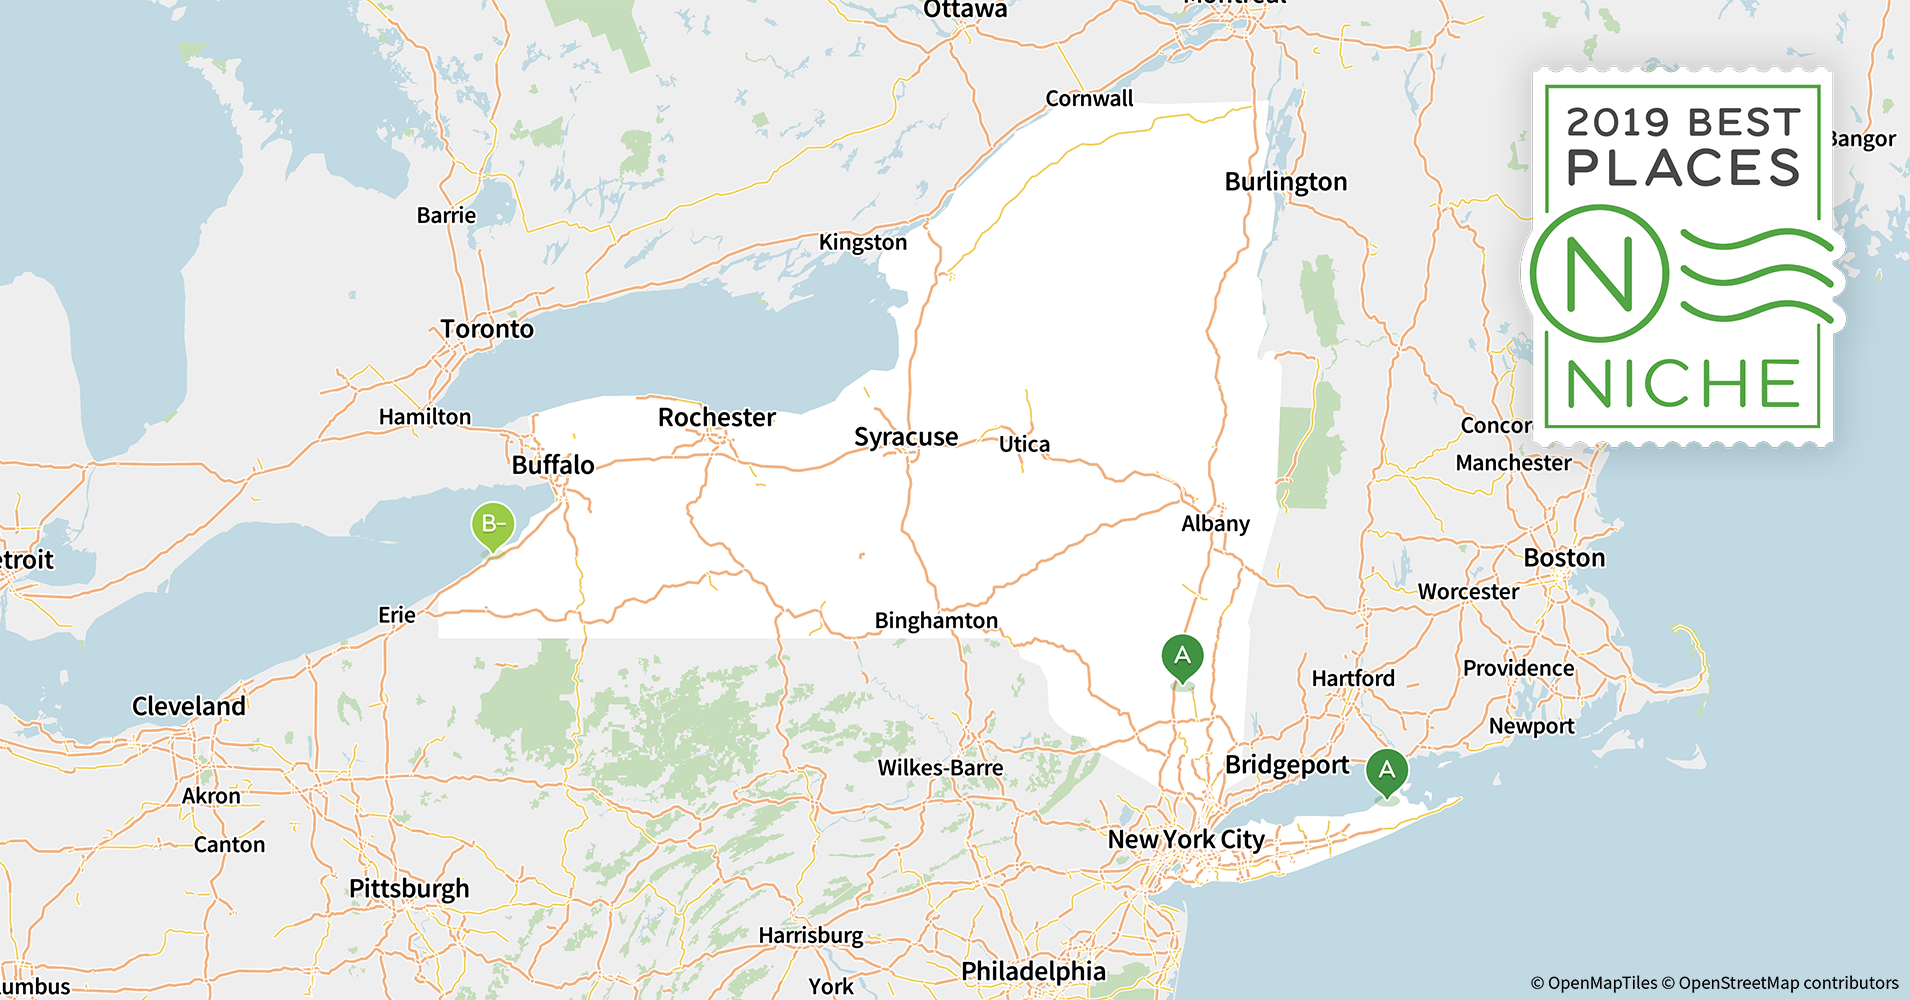 Map Of Cities In New York State.2019 Best Places To Live In New York Niche